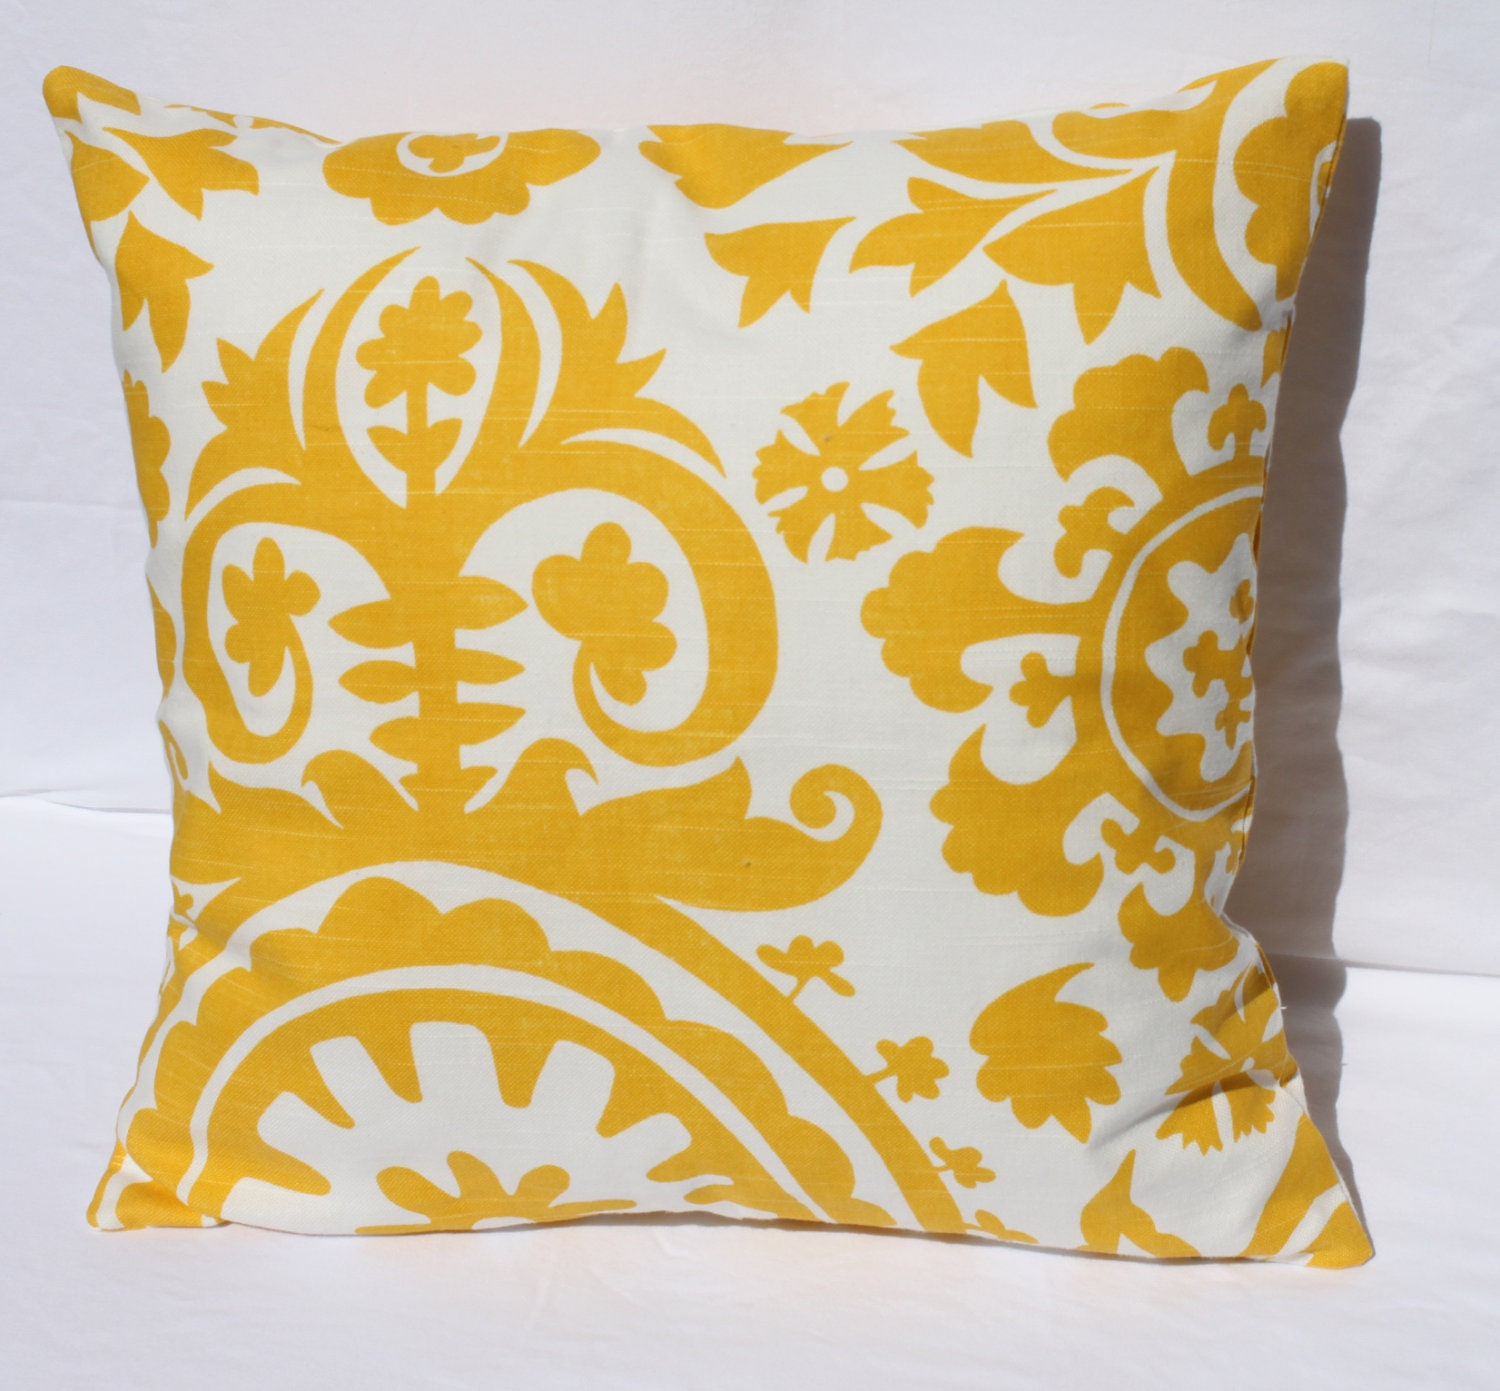 Yellow Decorative Pillows For Bed : Decorative Pillows Yellow Interior Decorating